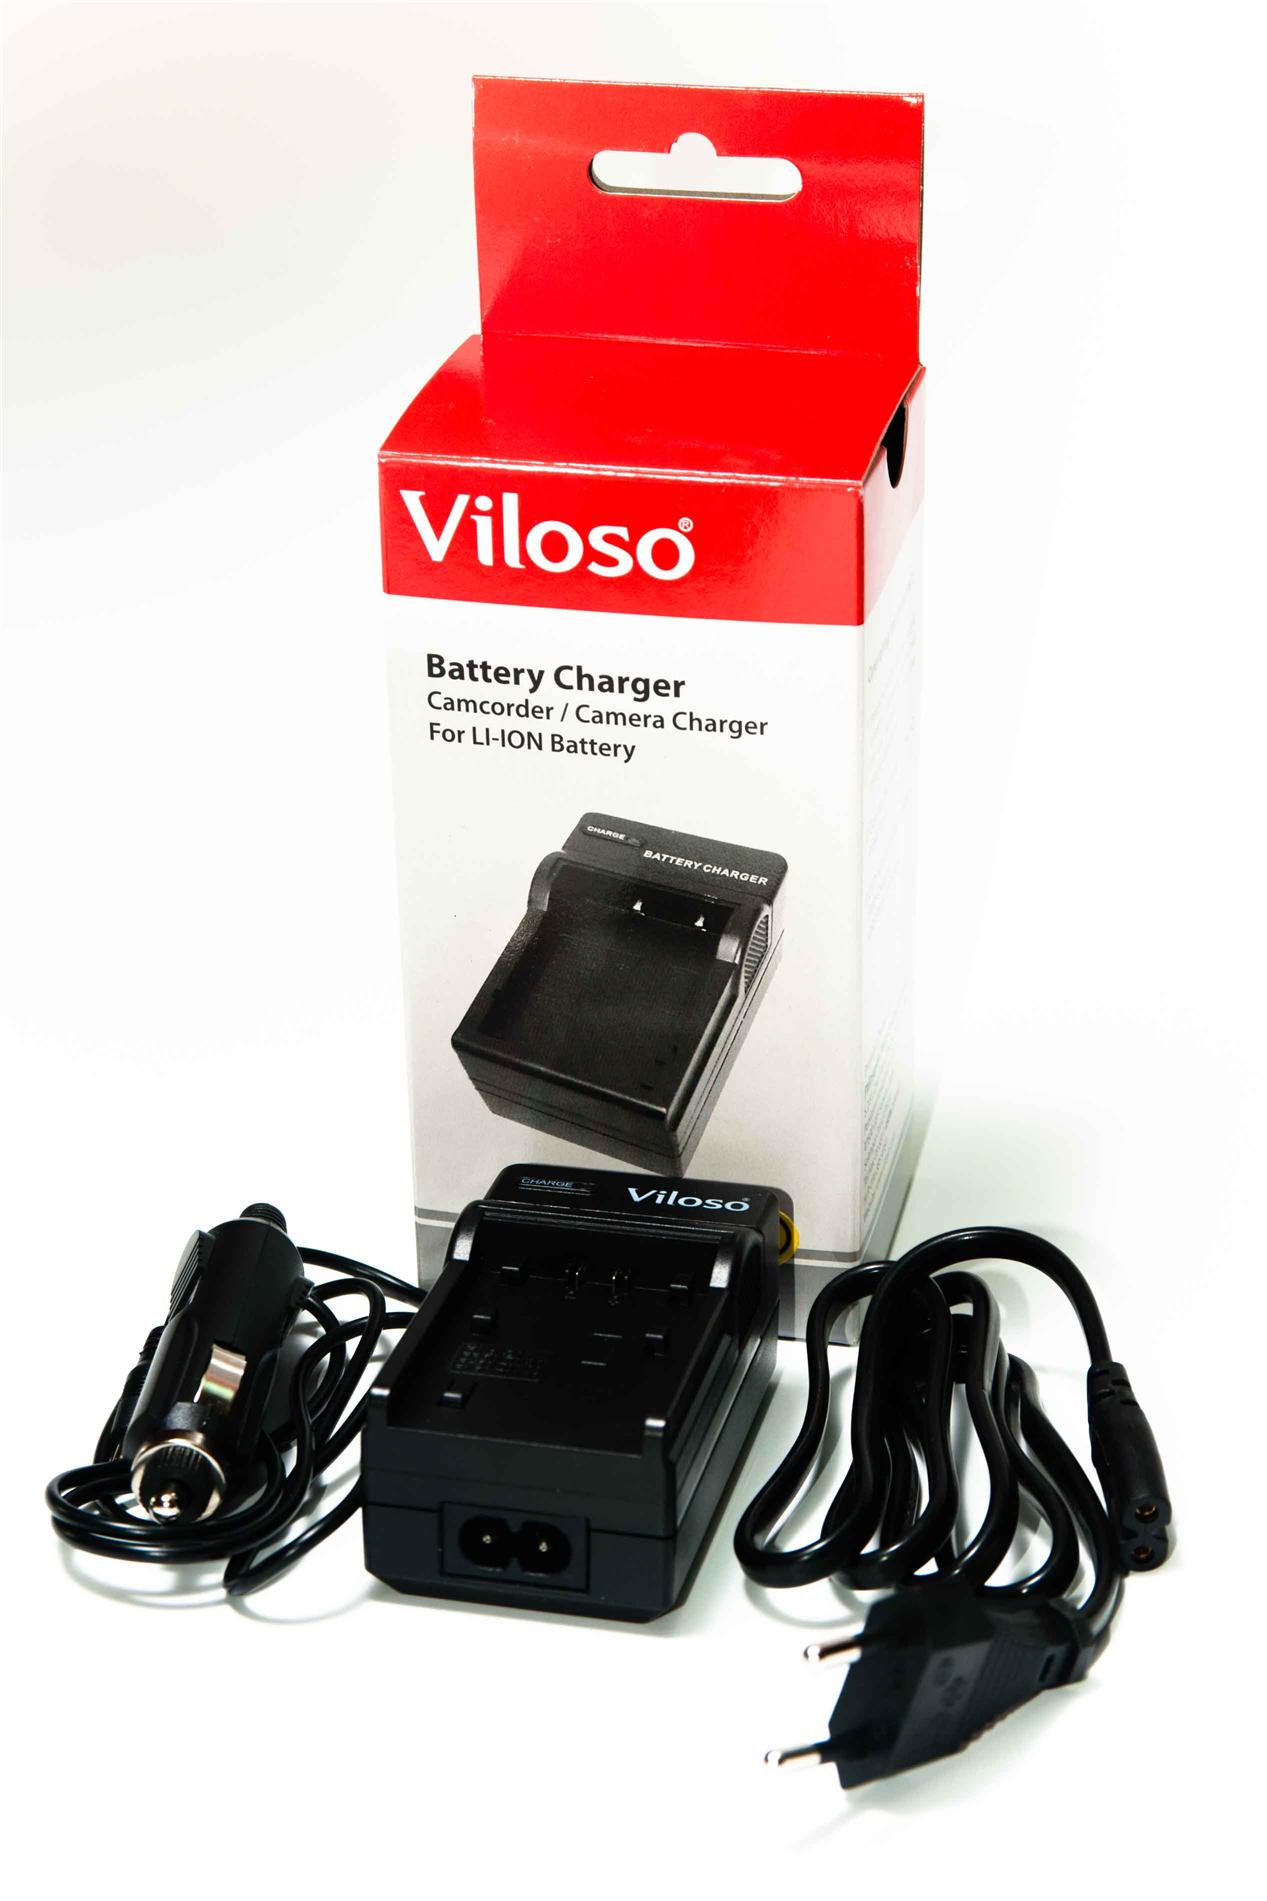 VILOSO Camera Charger With Car Adapt End 3 13 2018 315 PM